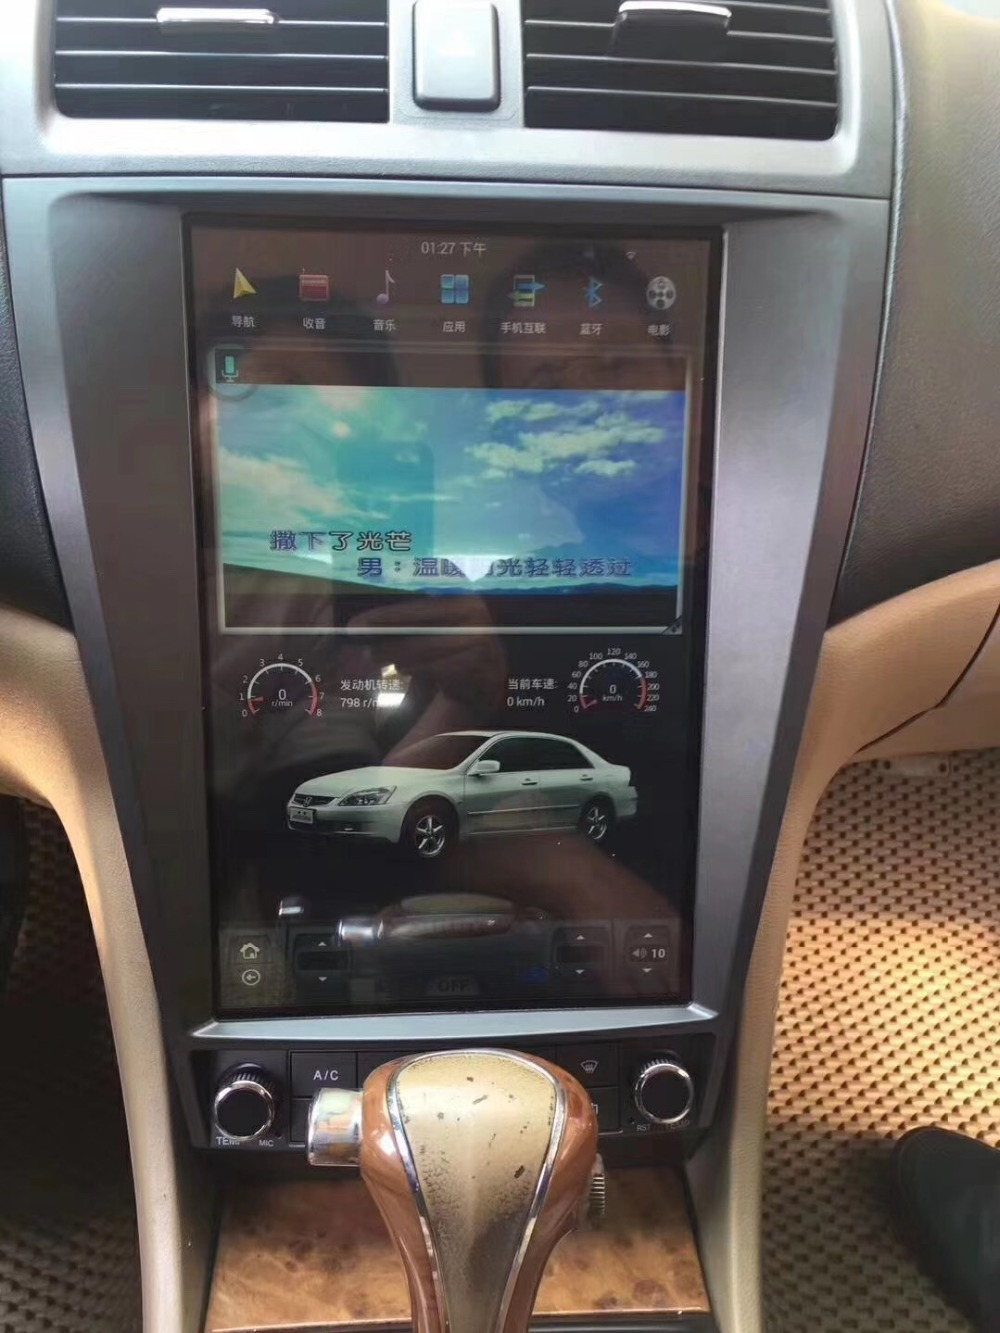 12.1 inch Vertical Big <font><b>Screen</b></font> Tesla Style Android 6.0 <font><b>Car</b></font> DVD Player GPS For <font><b>Honda</b></font> <font><b>Accord</b></font> 7 Multimedia <font><b>Radio</b></font> Stereo Player image